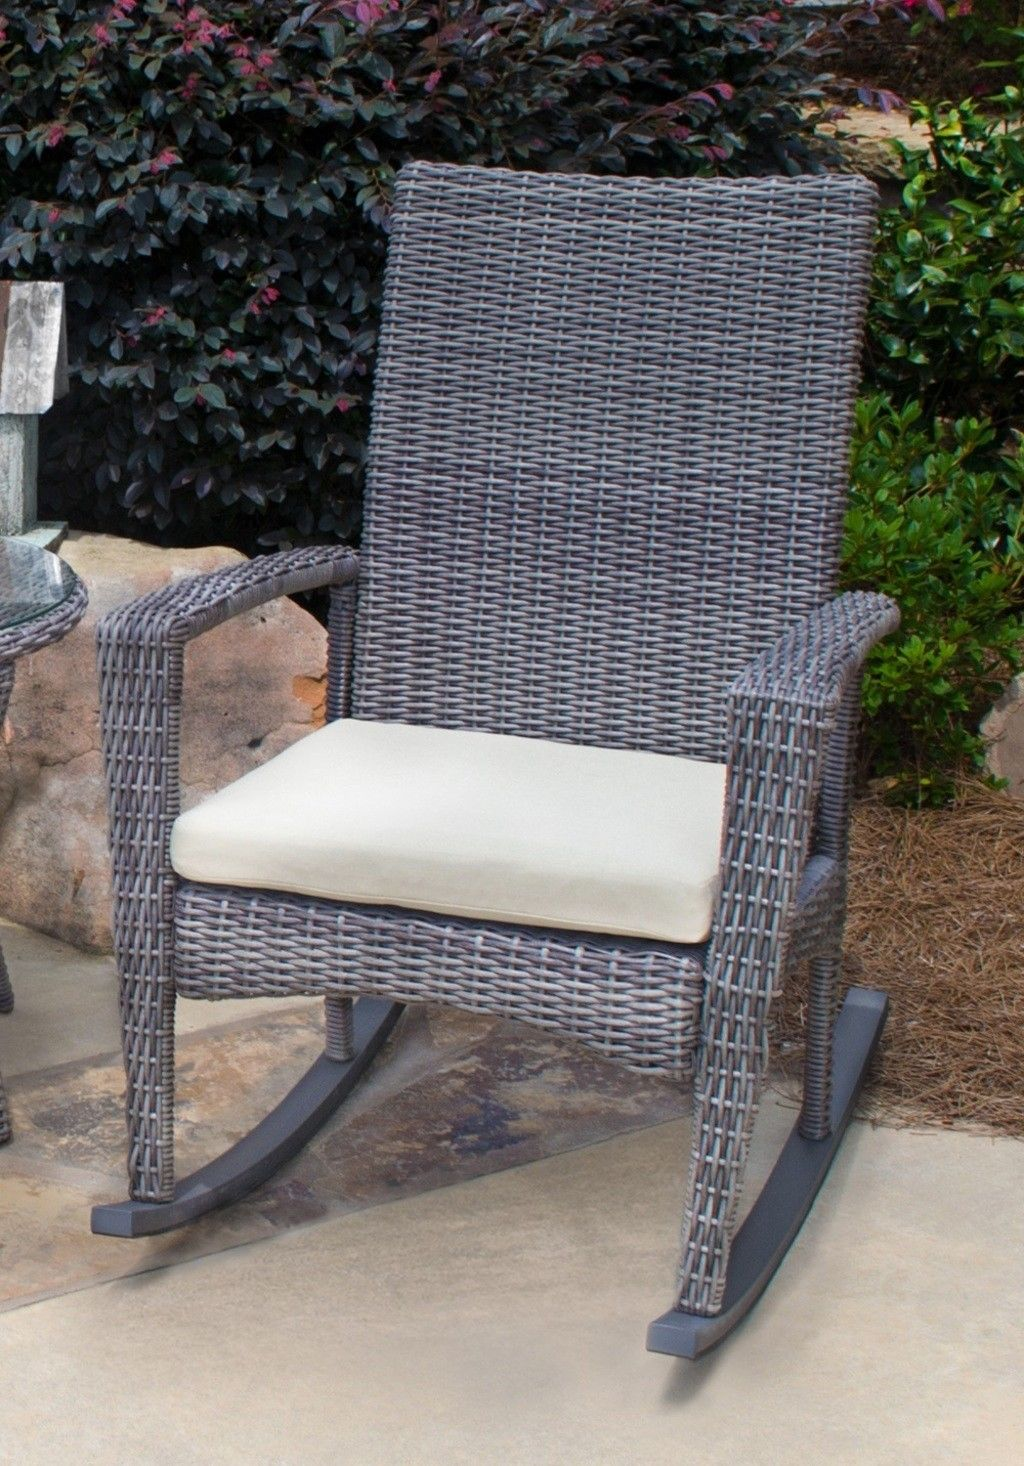 #167 - Outdoor Portside Patio Furniture Driftwood Wicker Rocking Chair/ Aluminum Frame